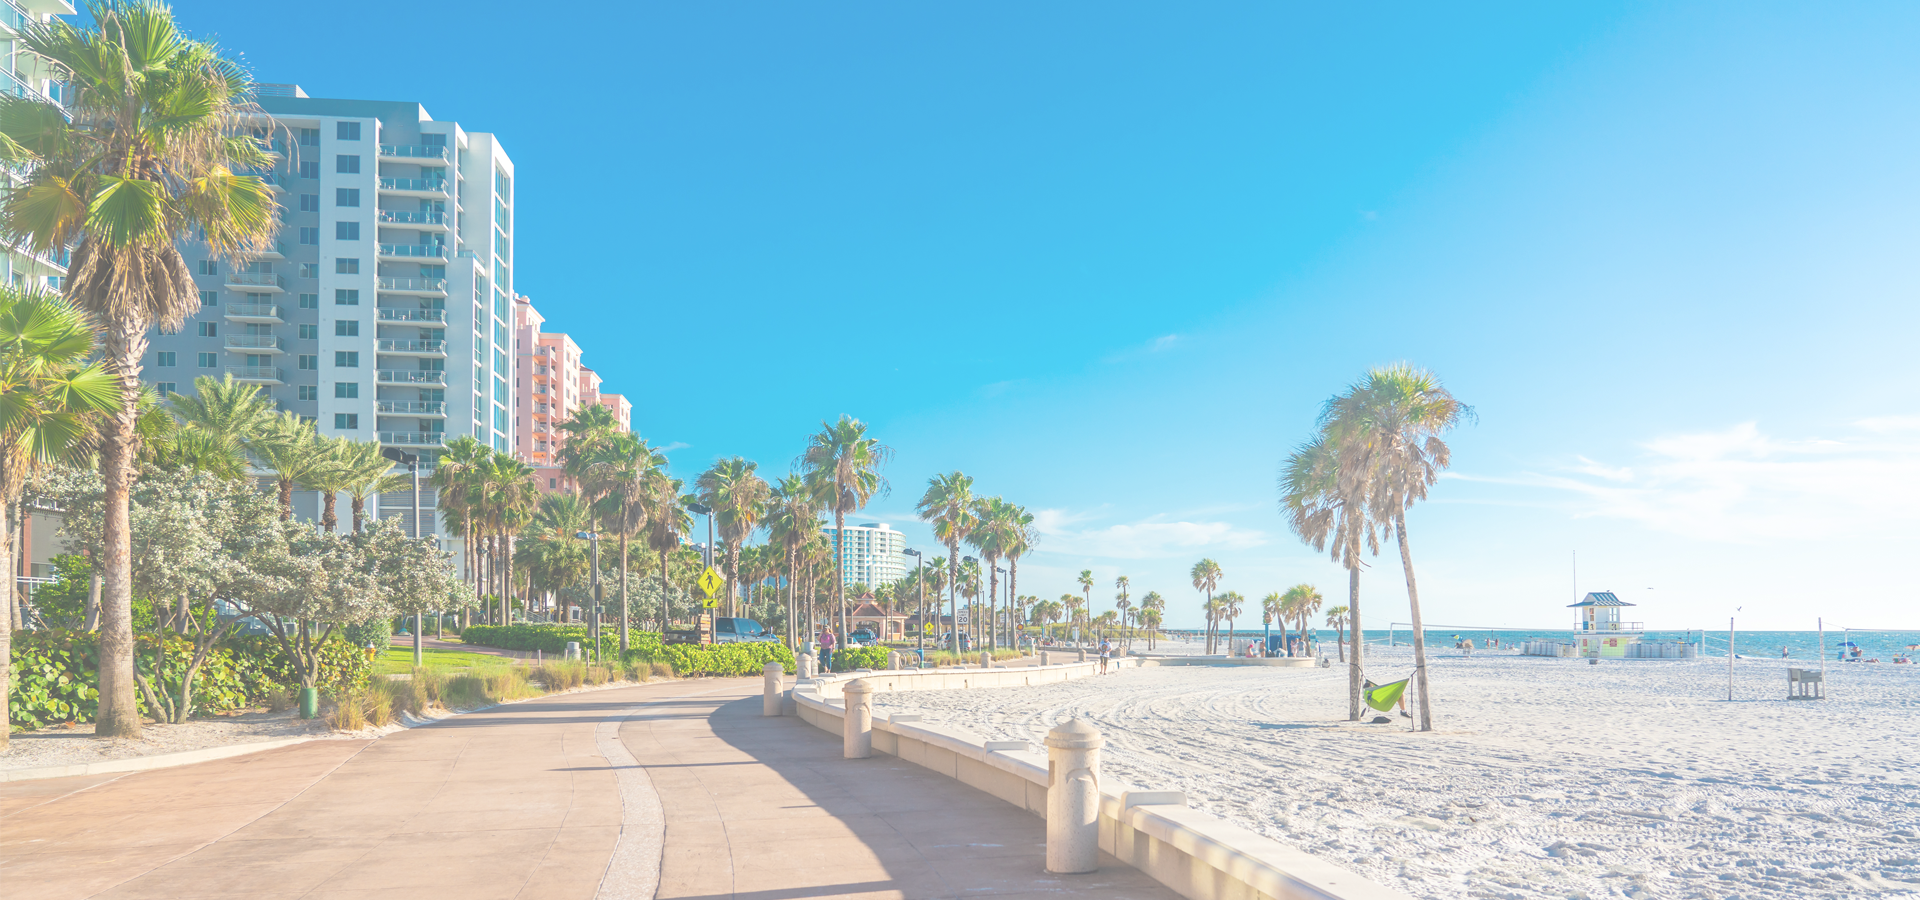 Peer-to-peer advisory in Clearwater, Tampa Bay, Florida, USA